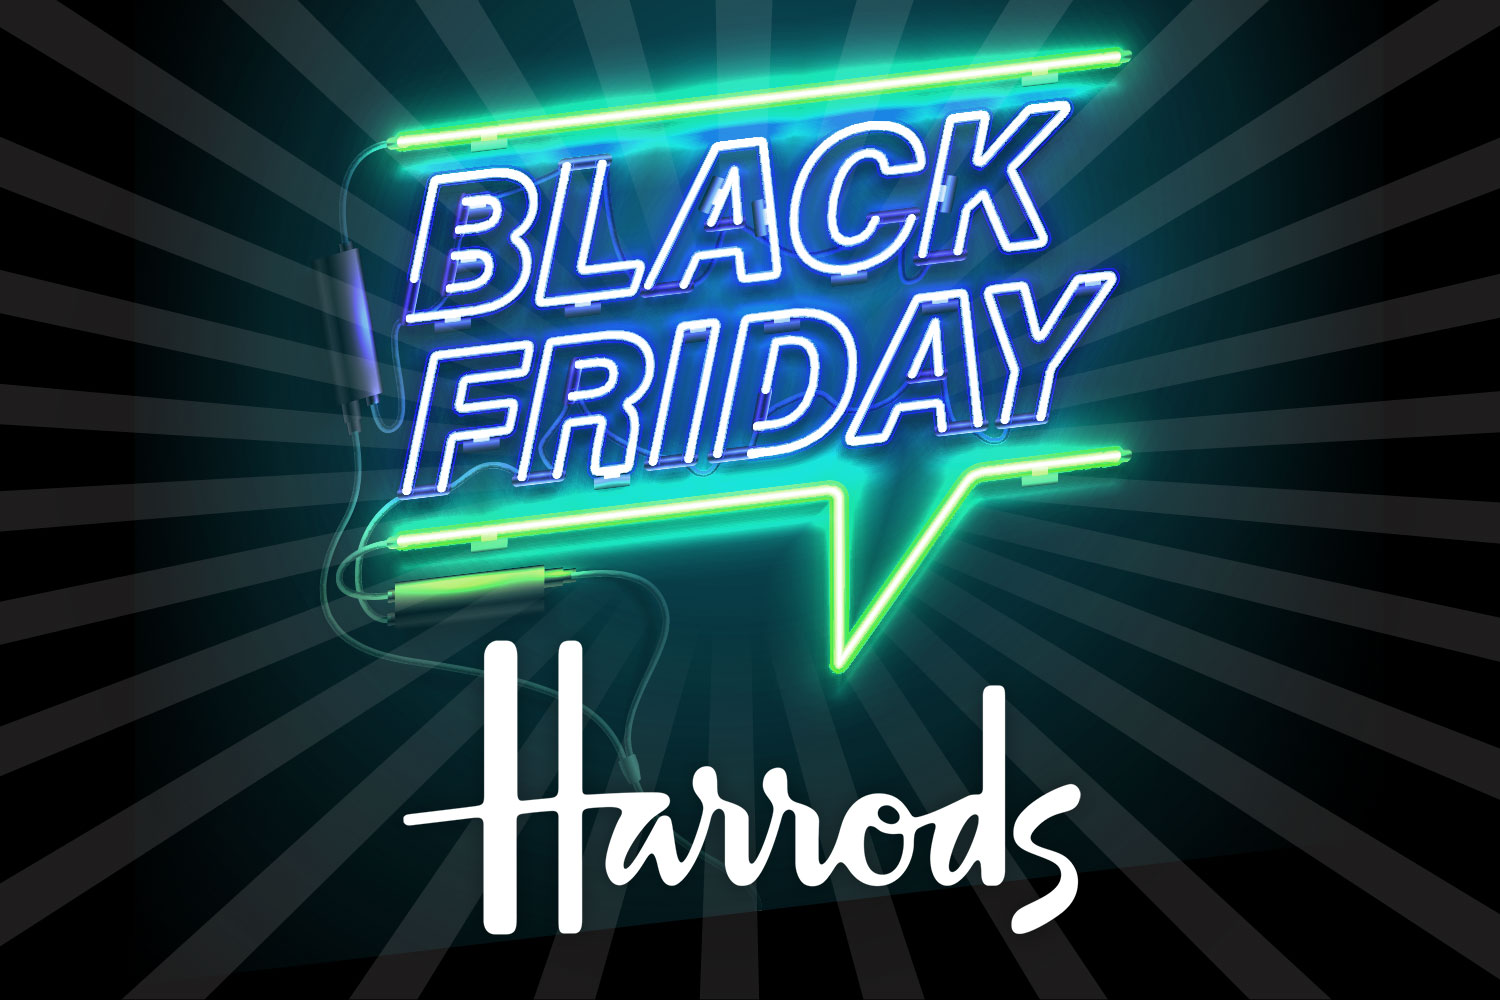 Harrods doesn't usually take part in Black Friday